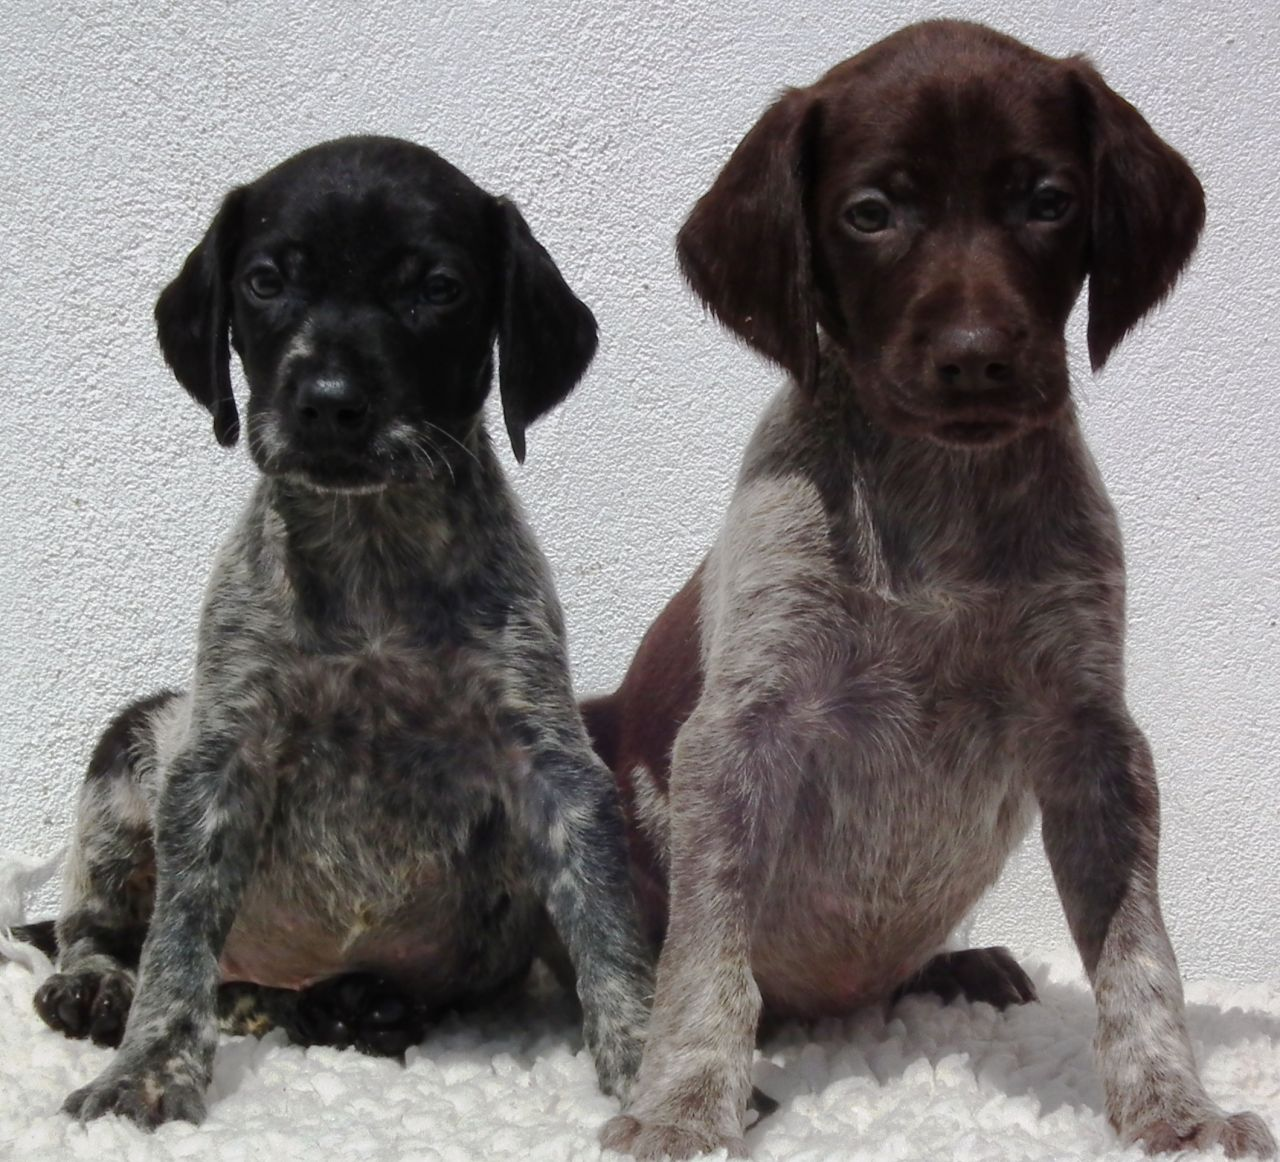 Black German Shorthaired Pointer Puppies Picture - Dog Breeders Guide